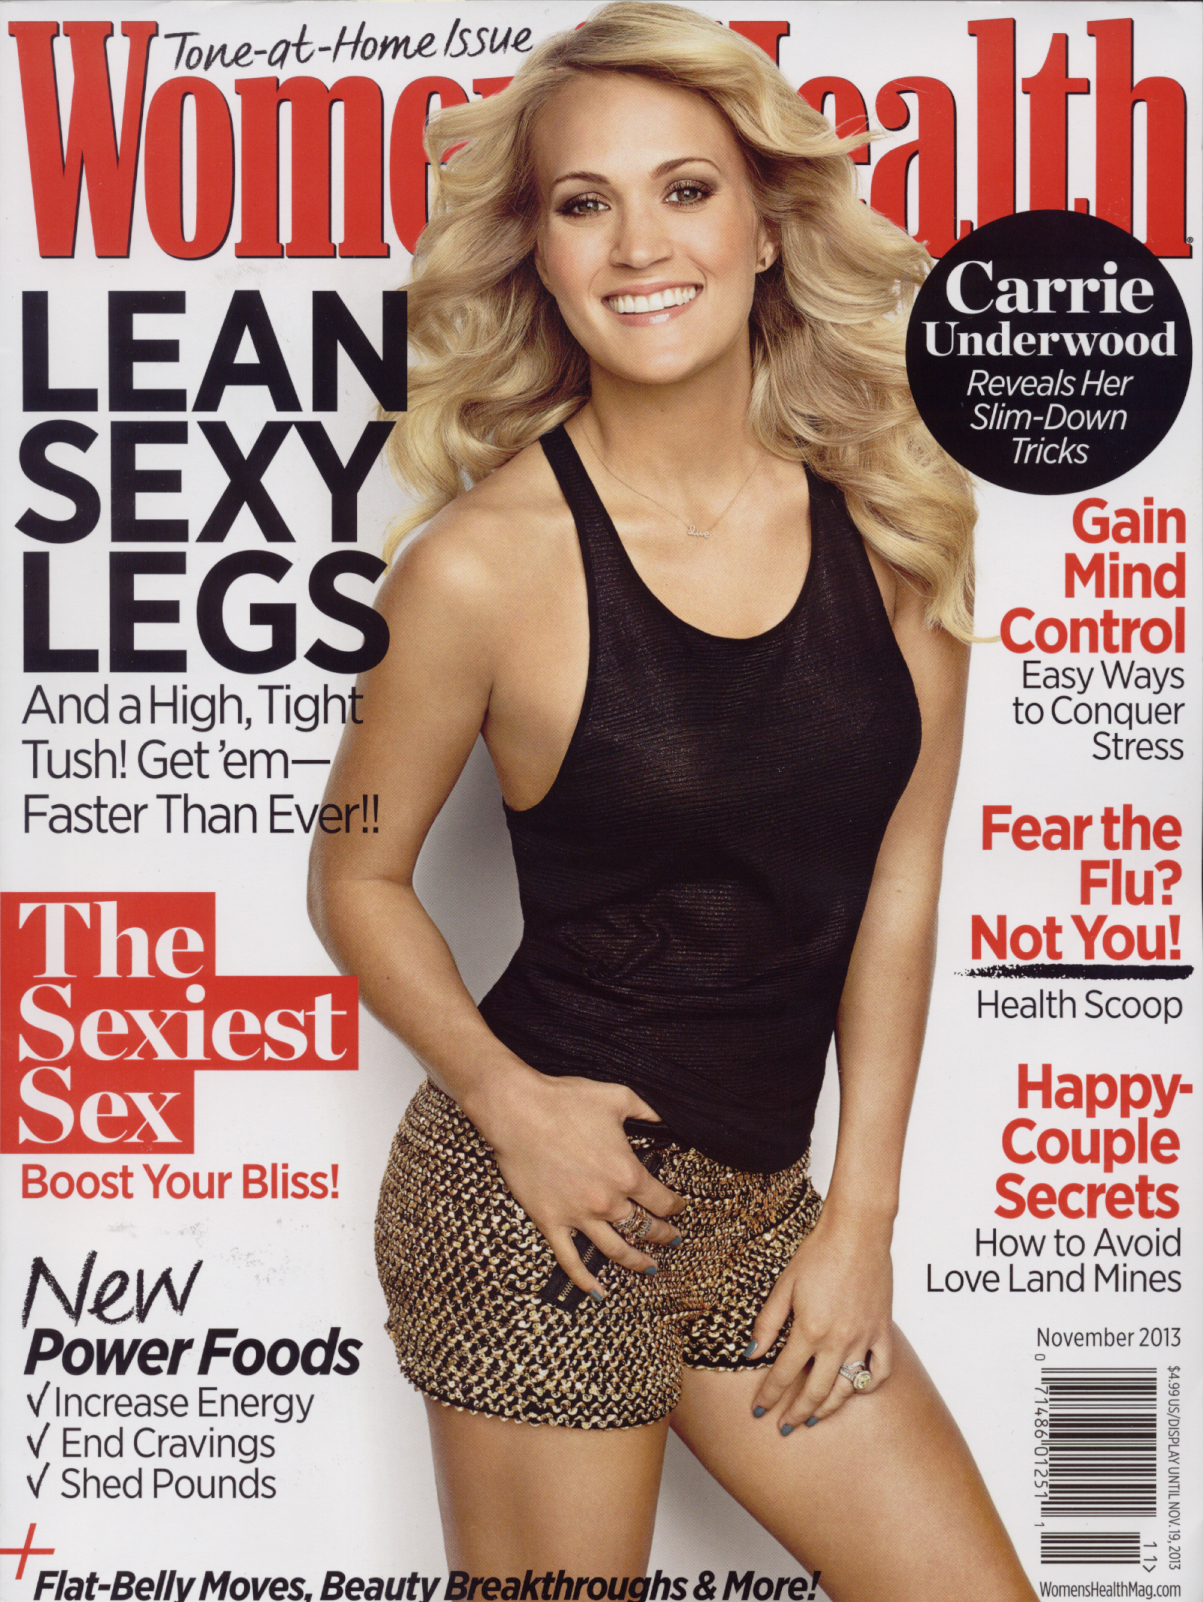 Women's Health Cover_10.14_Hi.jpg